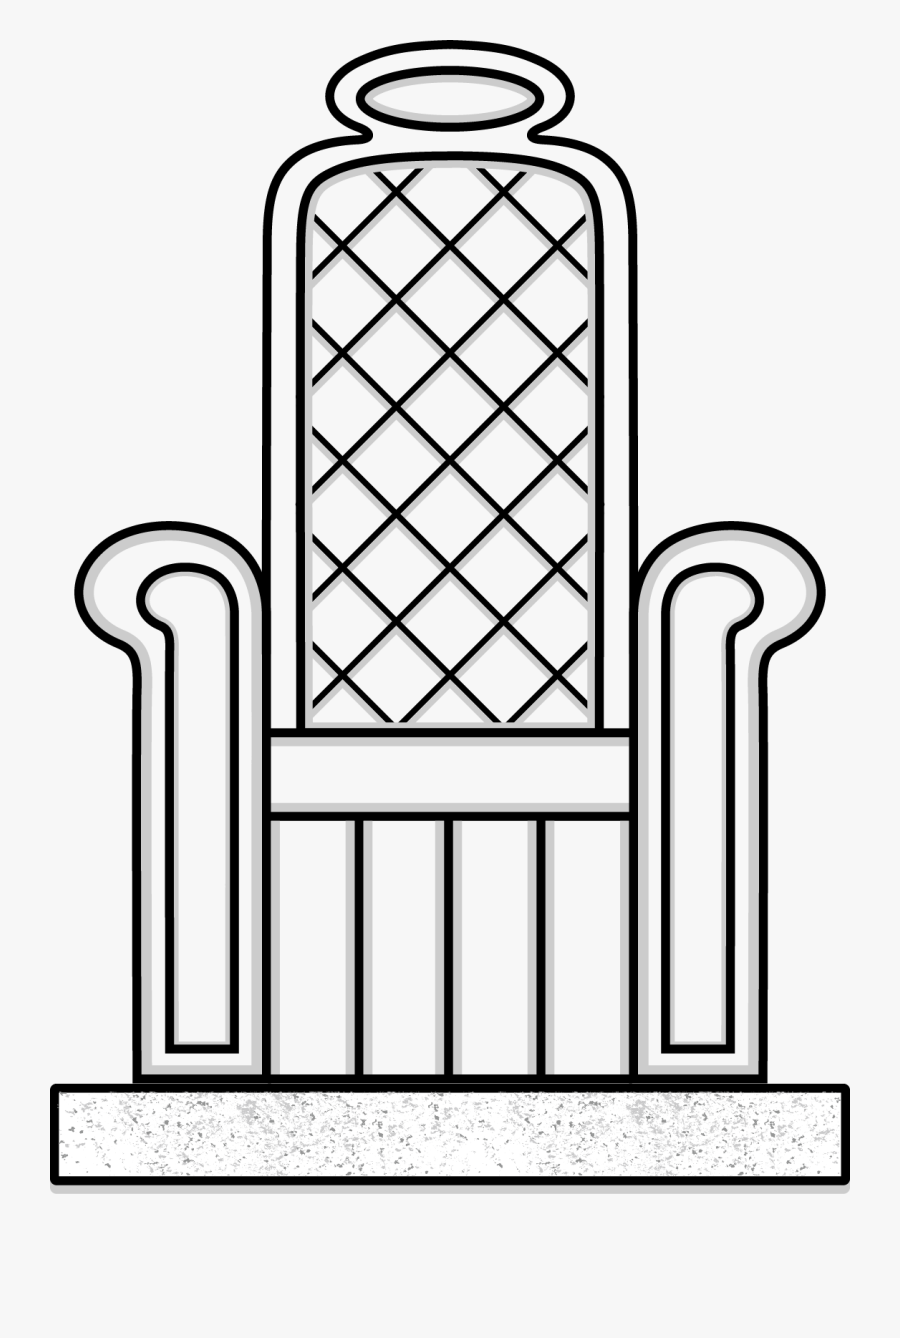 Throne Line Drawing, Transparent Clipart